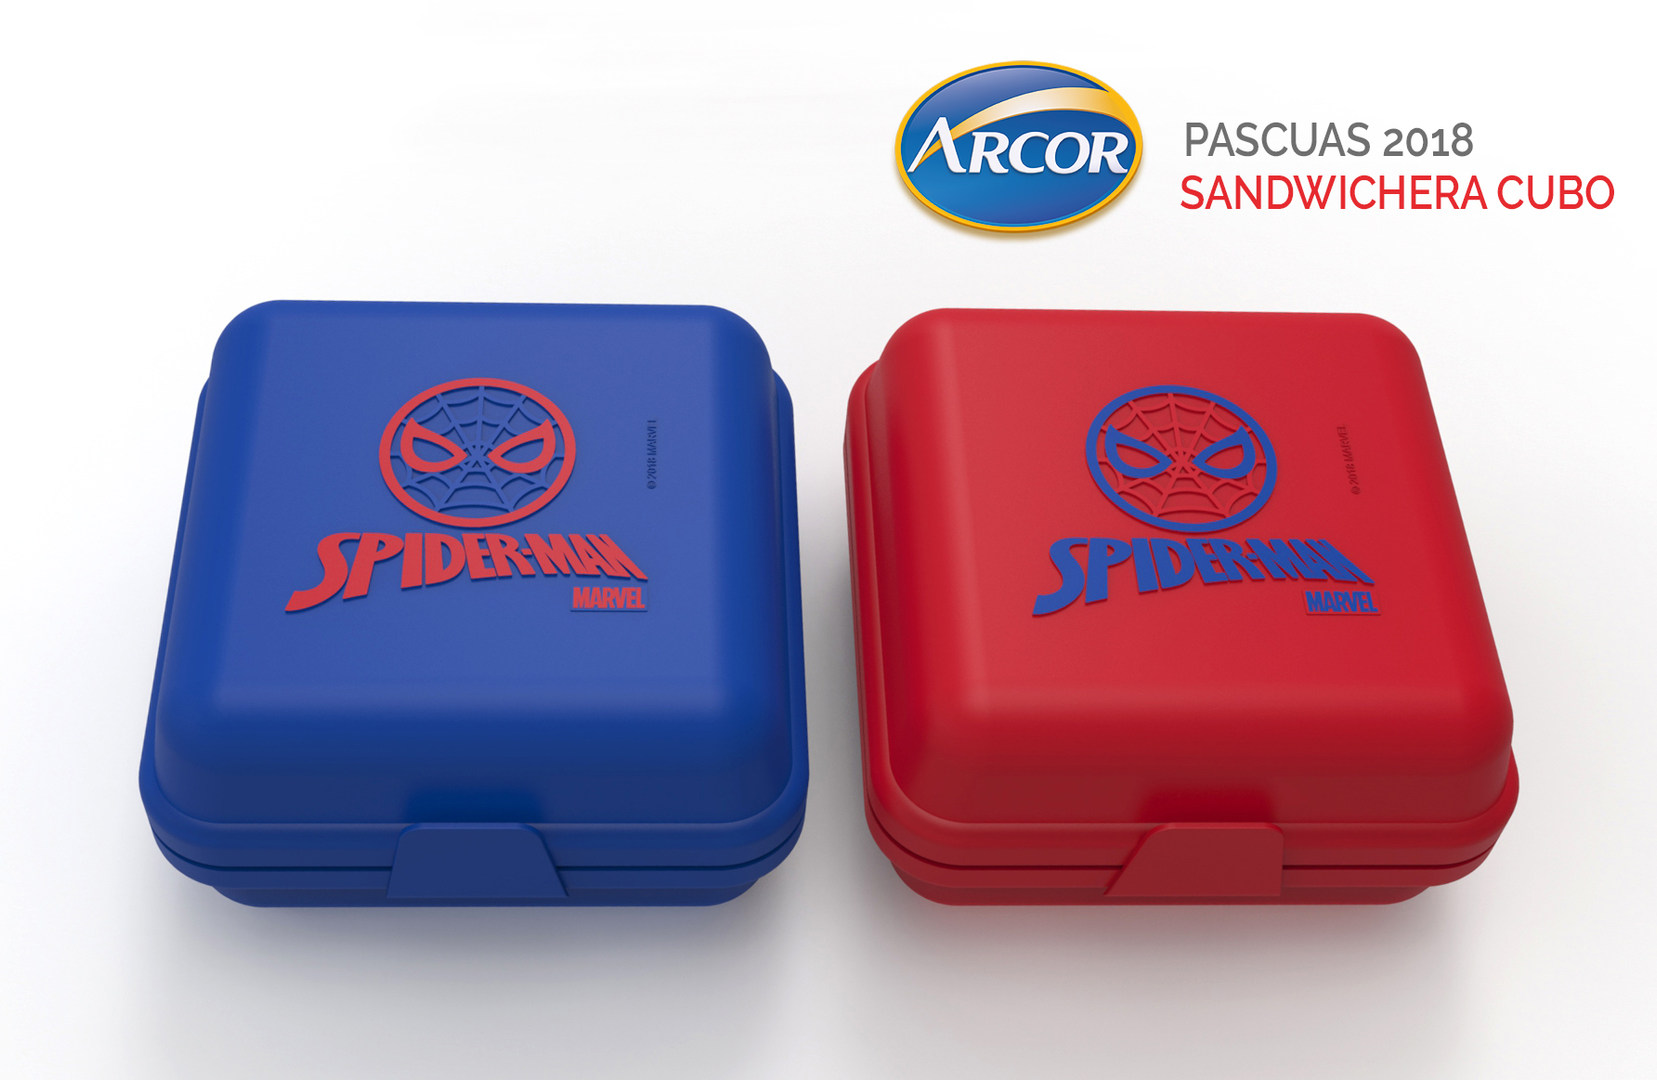 Sandwichera Cubo con aplique en Relieve - ARCOR PASCUAS